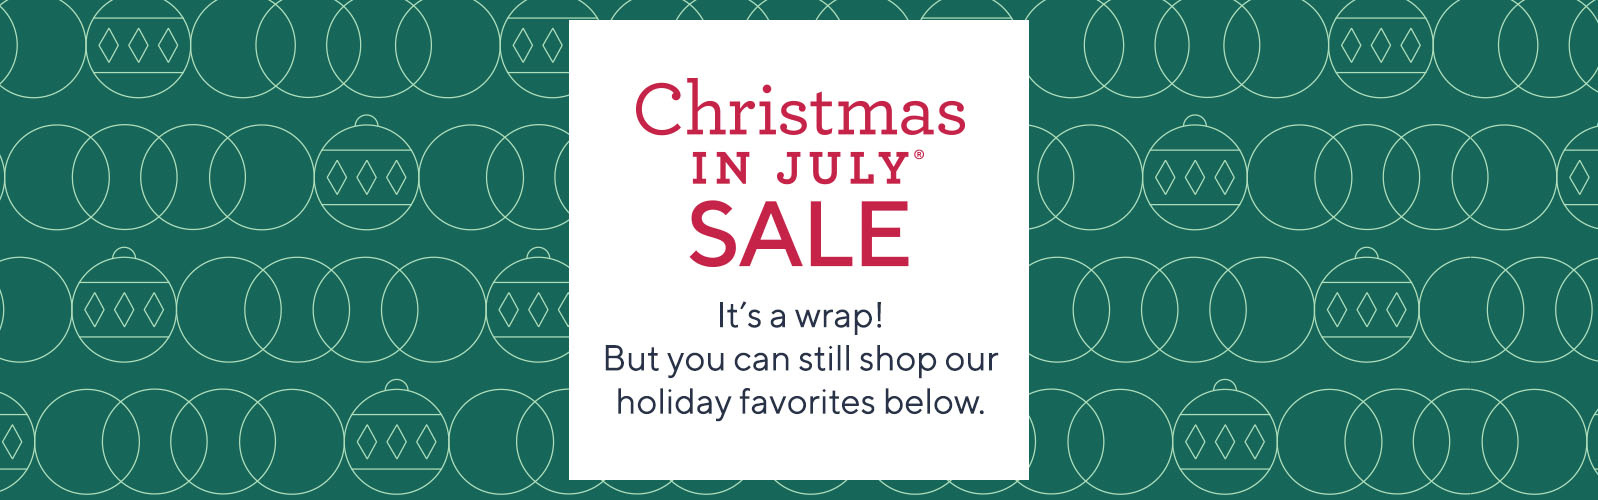 Christmas In July Qvc.Christmas In July Sale Shop Everything Christmas Qvc Com